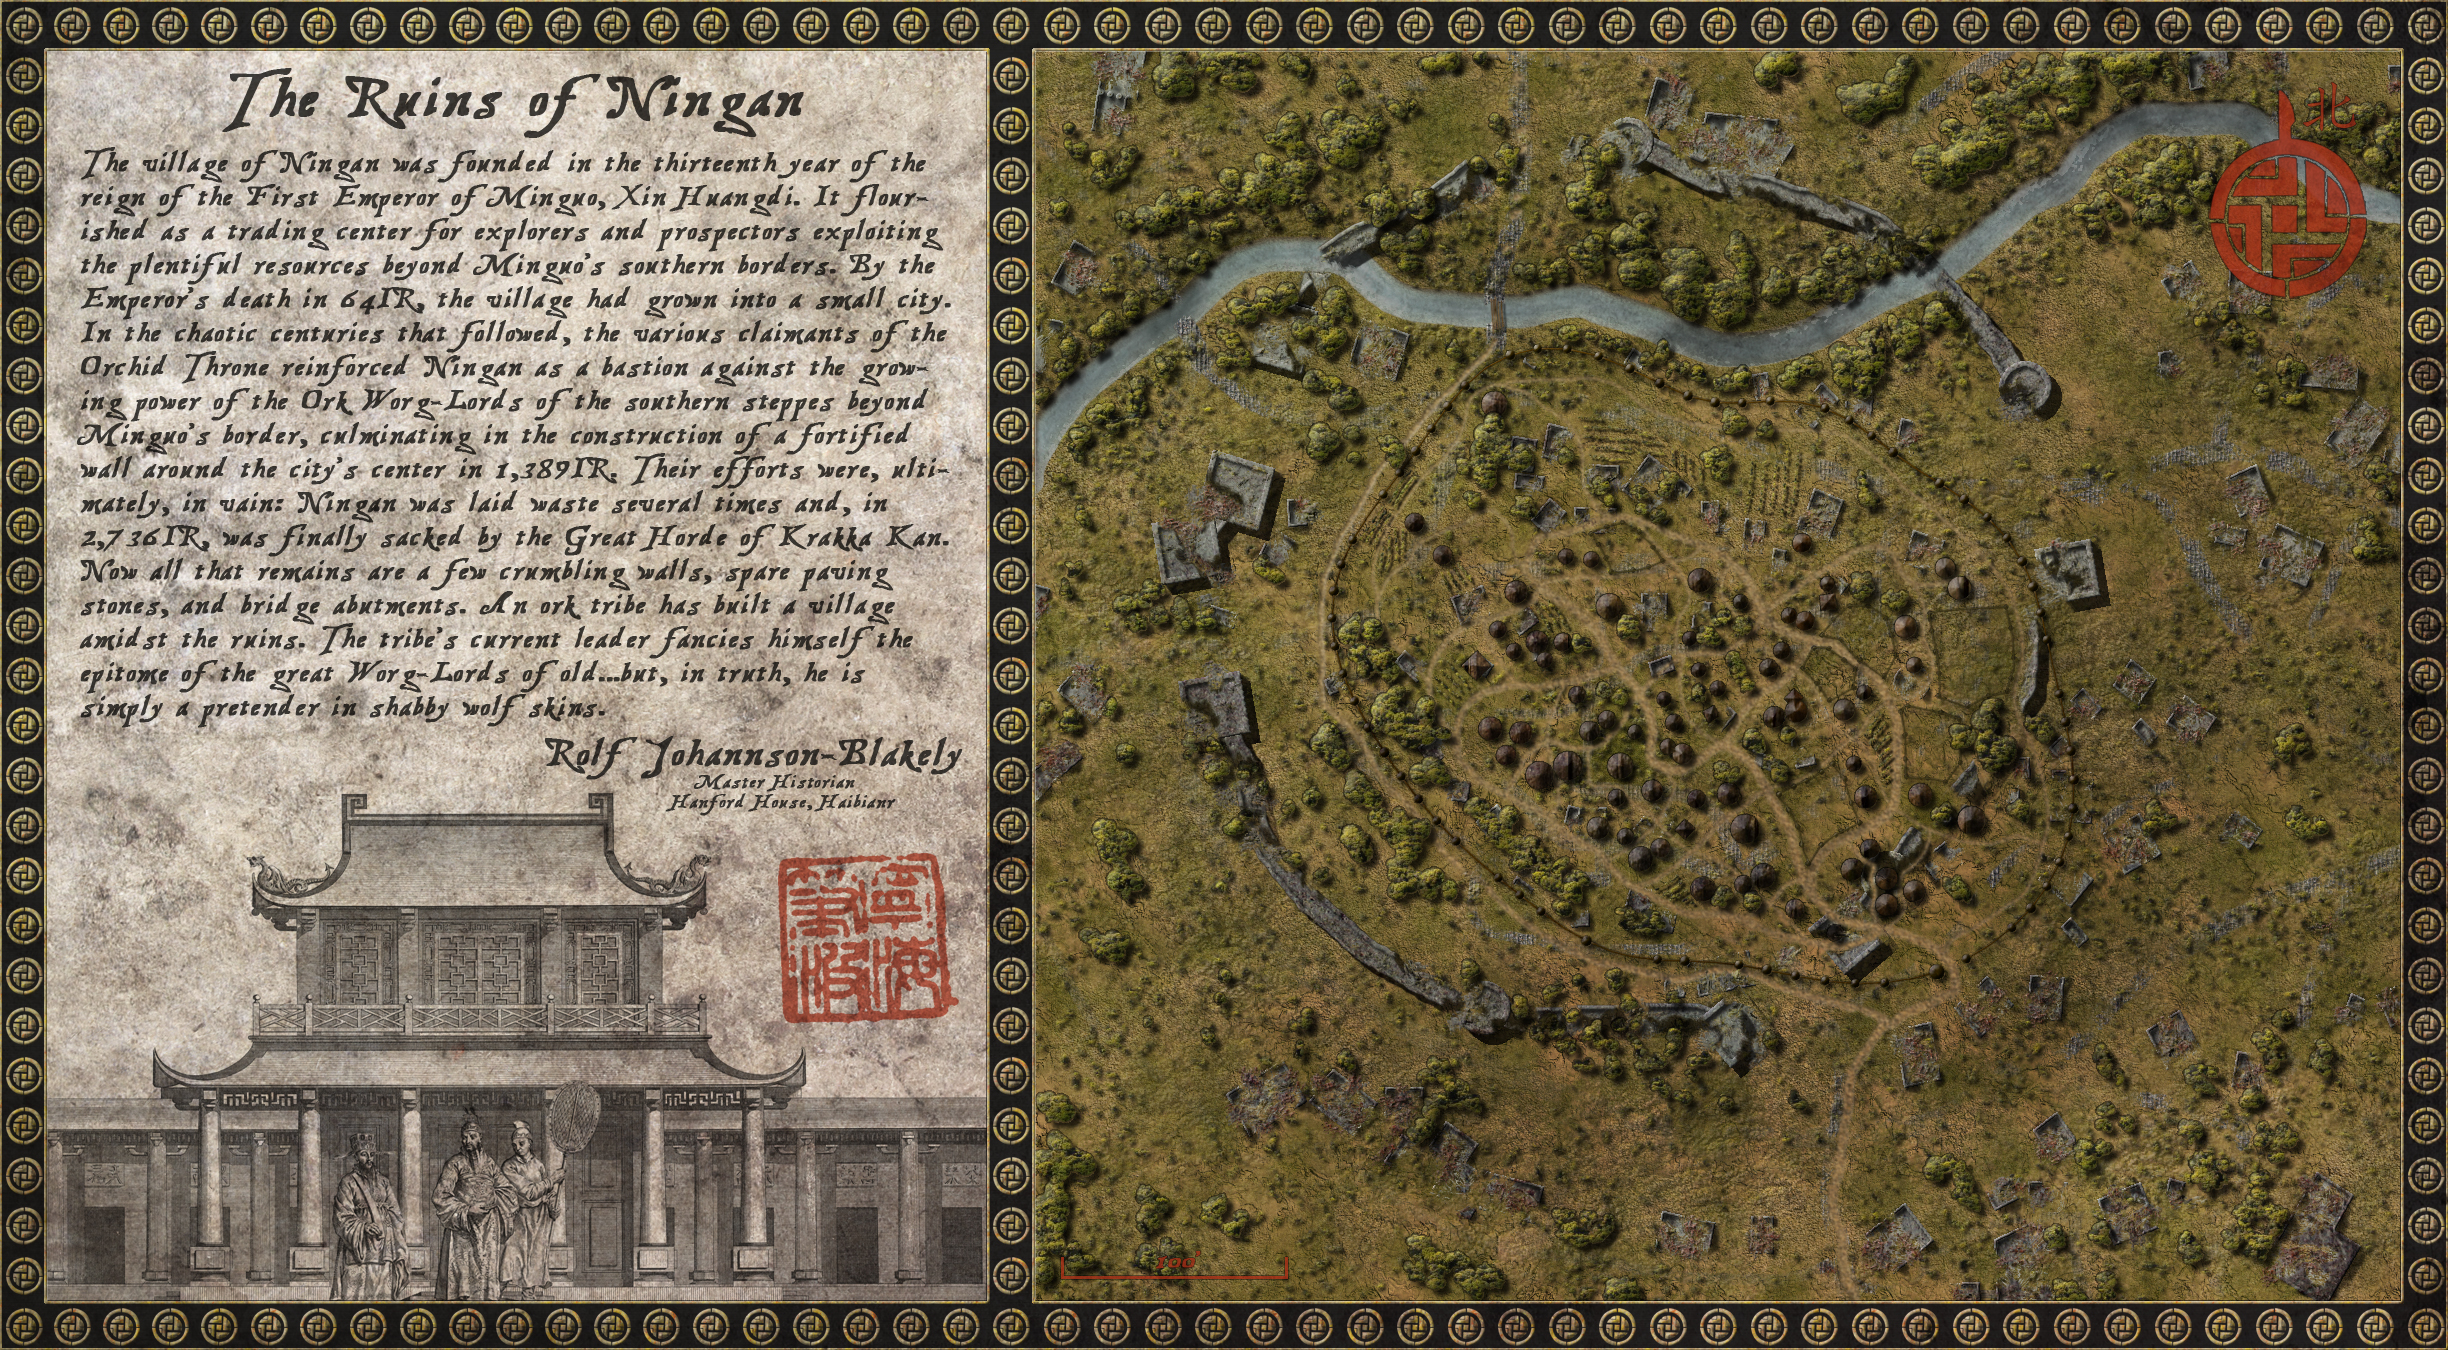 The ruins of Ningan/Ork worg-lord village. January 2013 challenge entry (and winner!) Done with Photoshop CS4 and RPG City Generator.